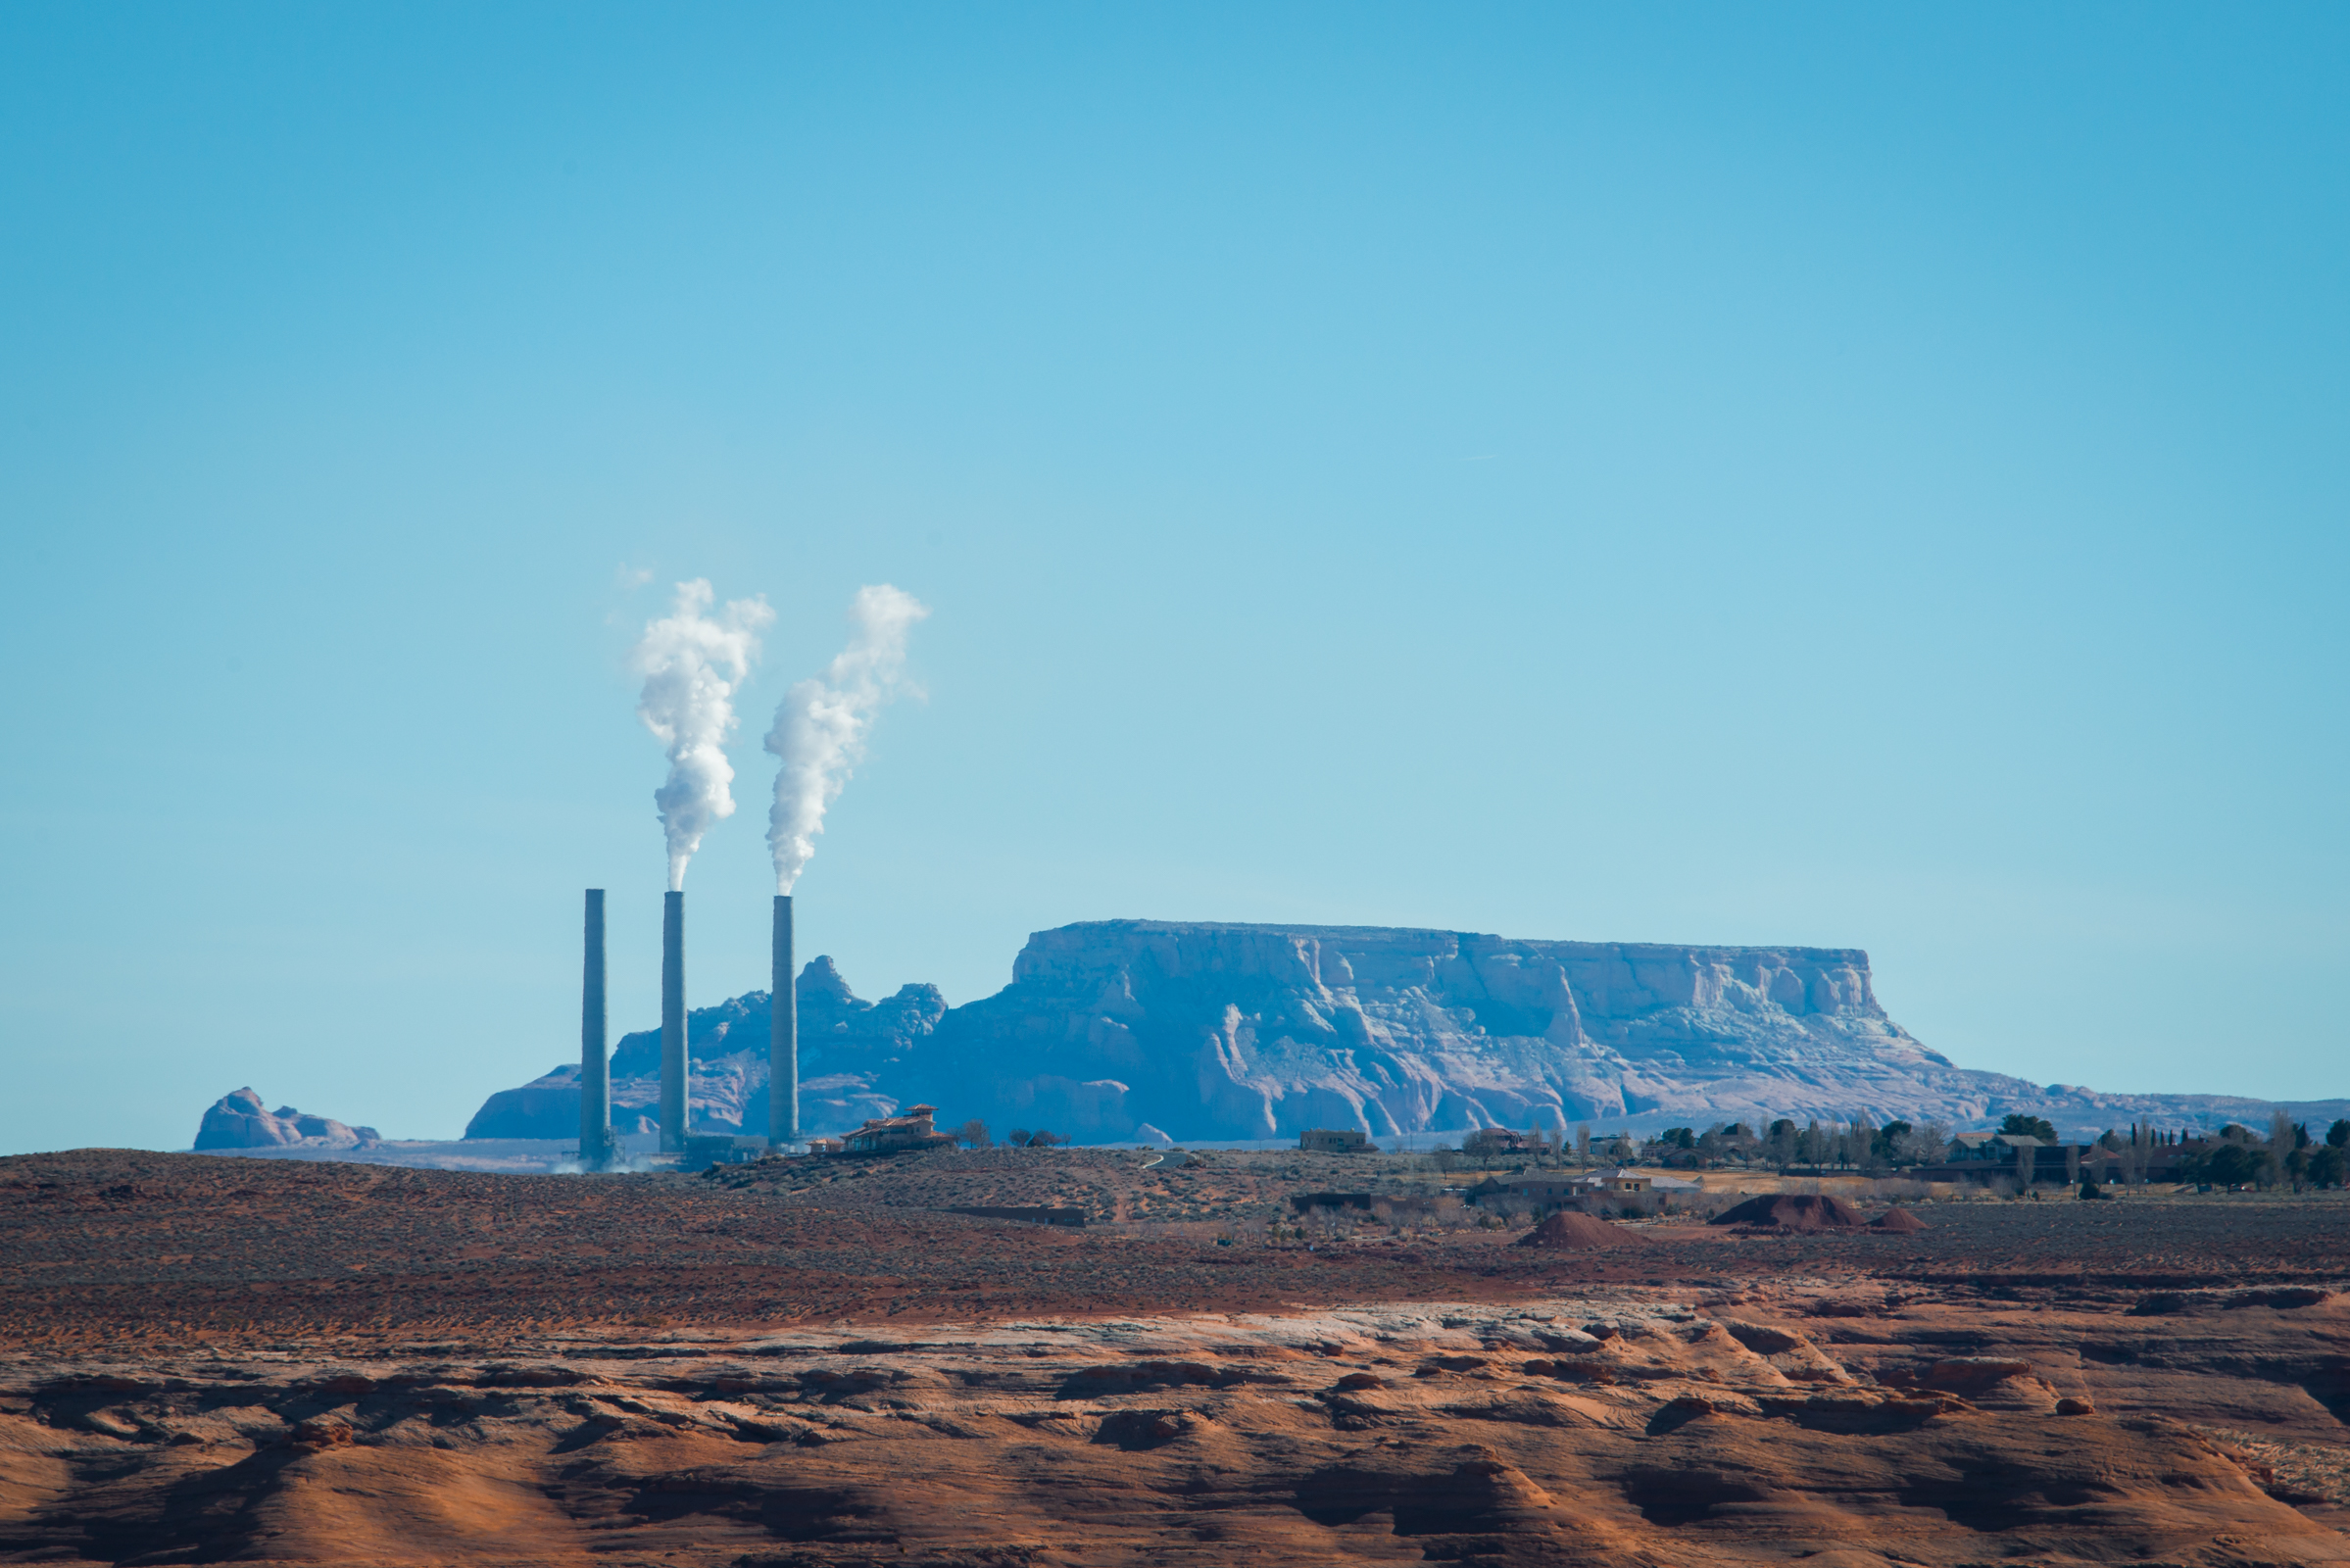 roadside landscape with smokestacks somewhere between utah and nevada, photographed by jamie bannon photography.